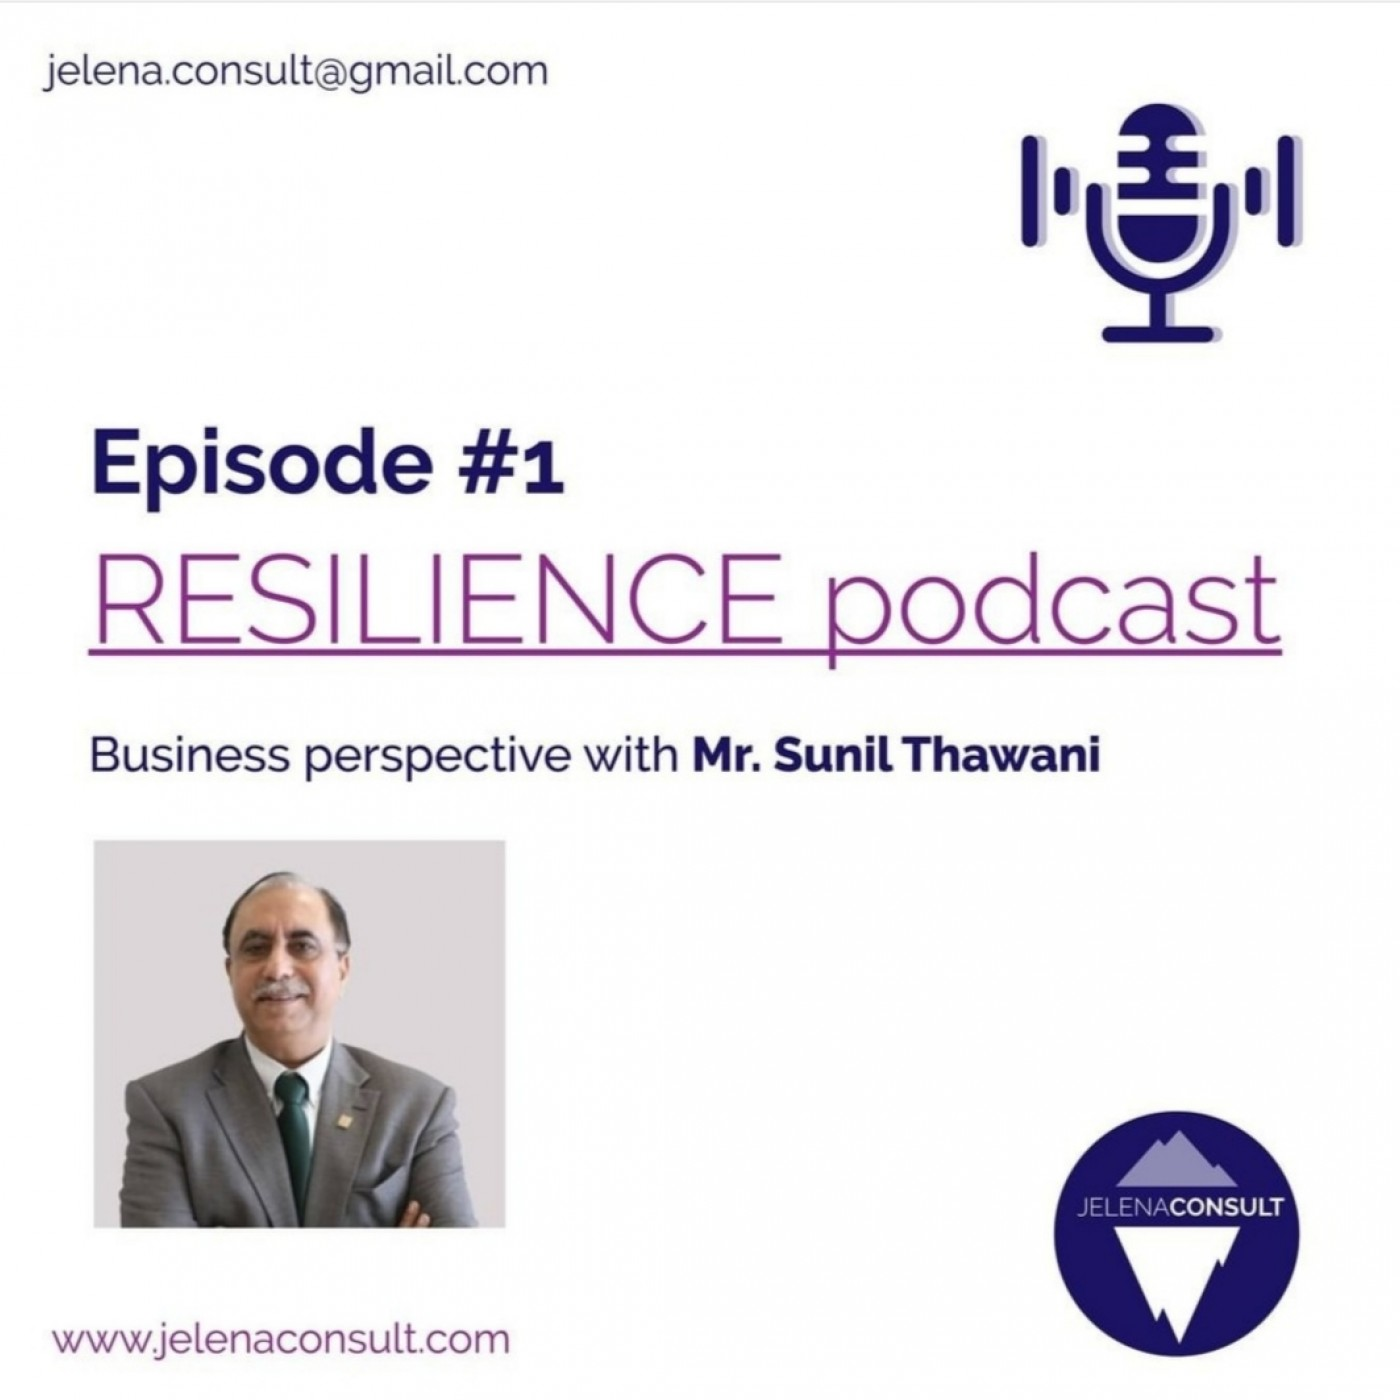 #1 Resilience & Business Excellence - Episode guest: Mr. Sunil Thawani